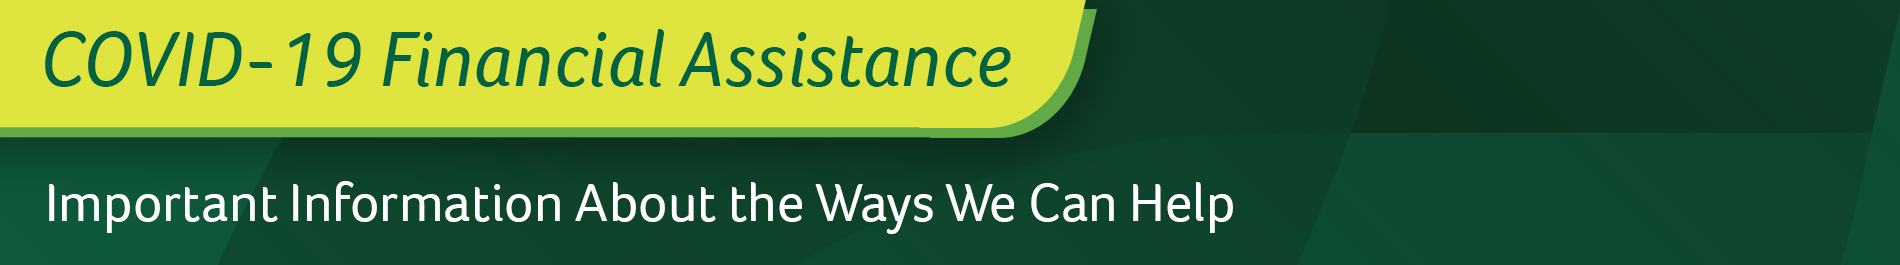 COVID-19 Financial Assistance header graphic